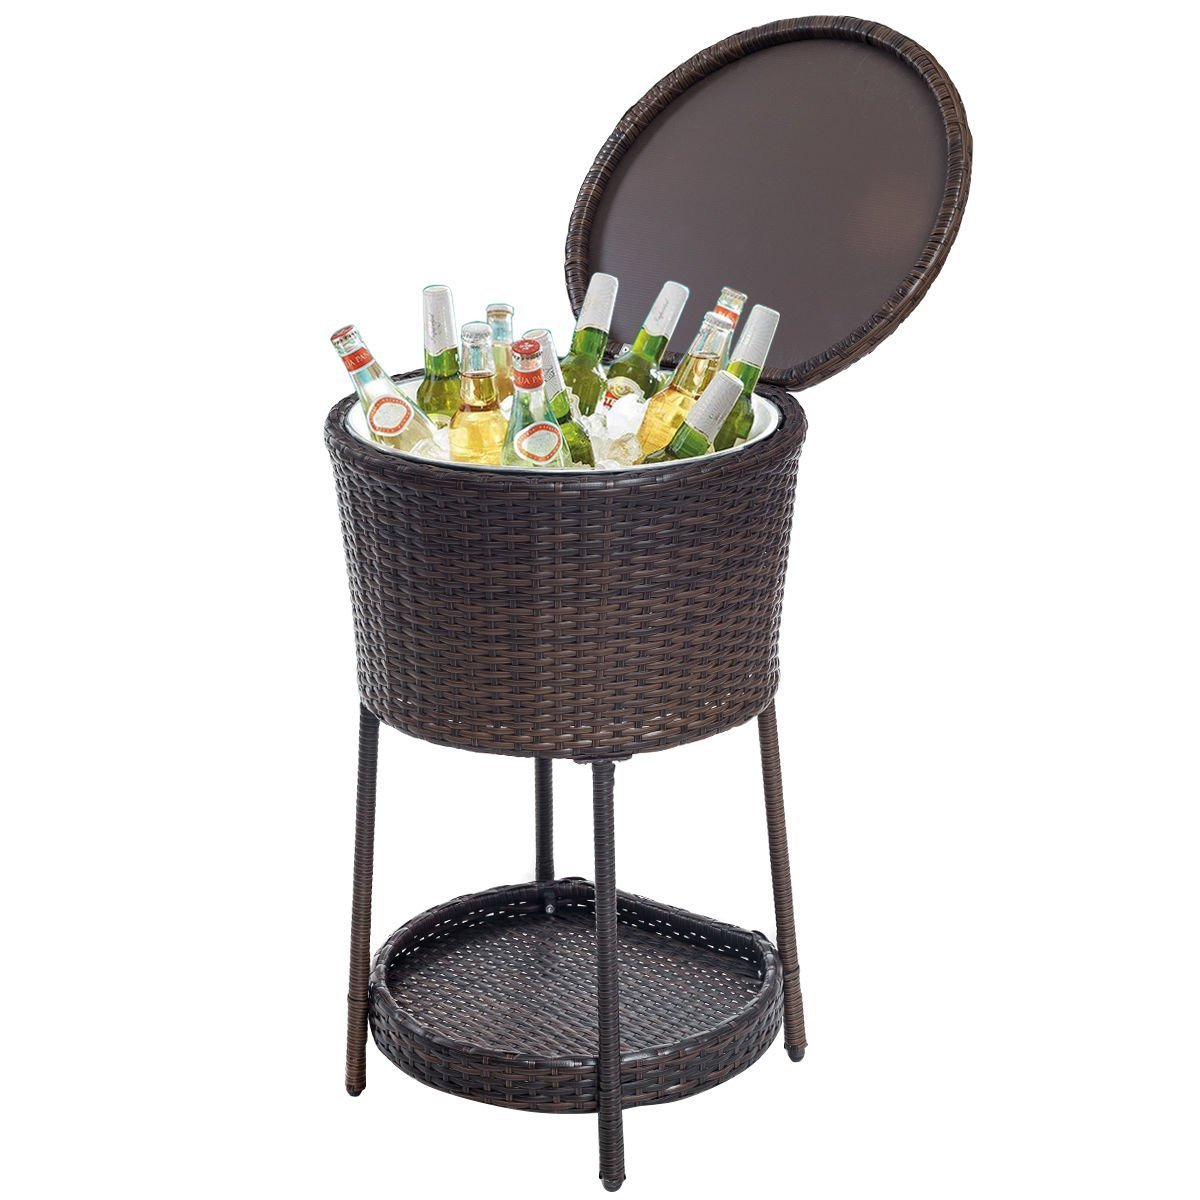 nak wicker cooler table outdoor cool bar patio coffee side with ice bucket garden drinks poolside lawn and backyard wine teak mid century modern dining bench circle set white